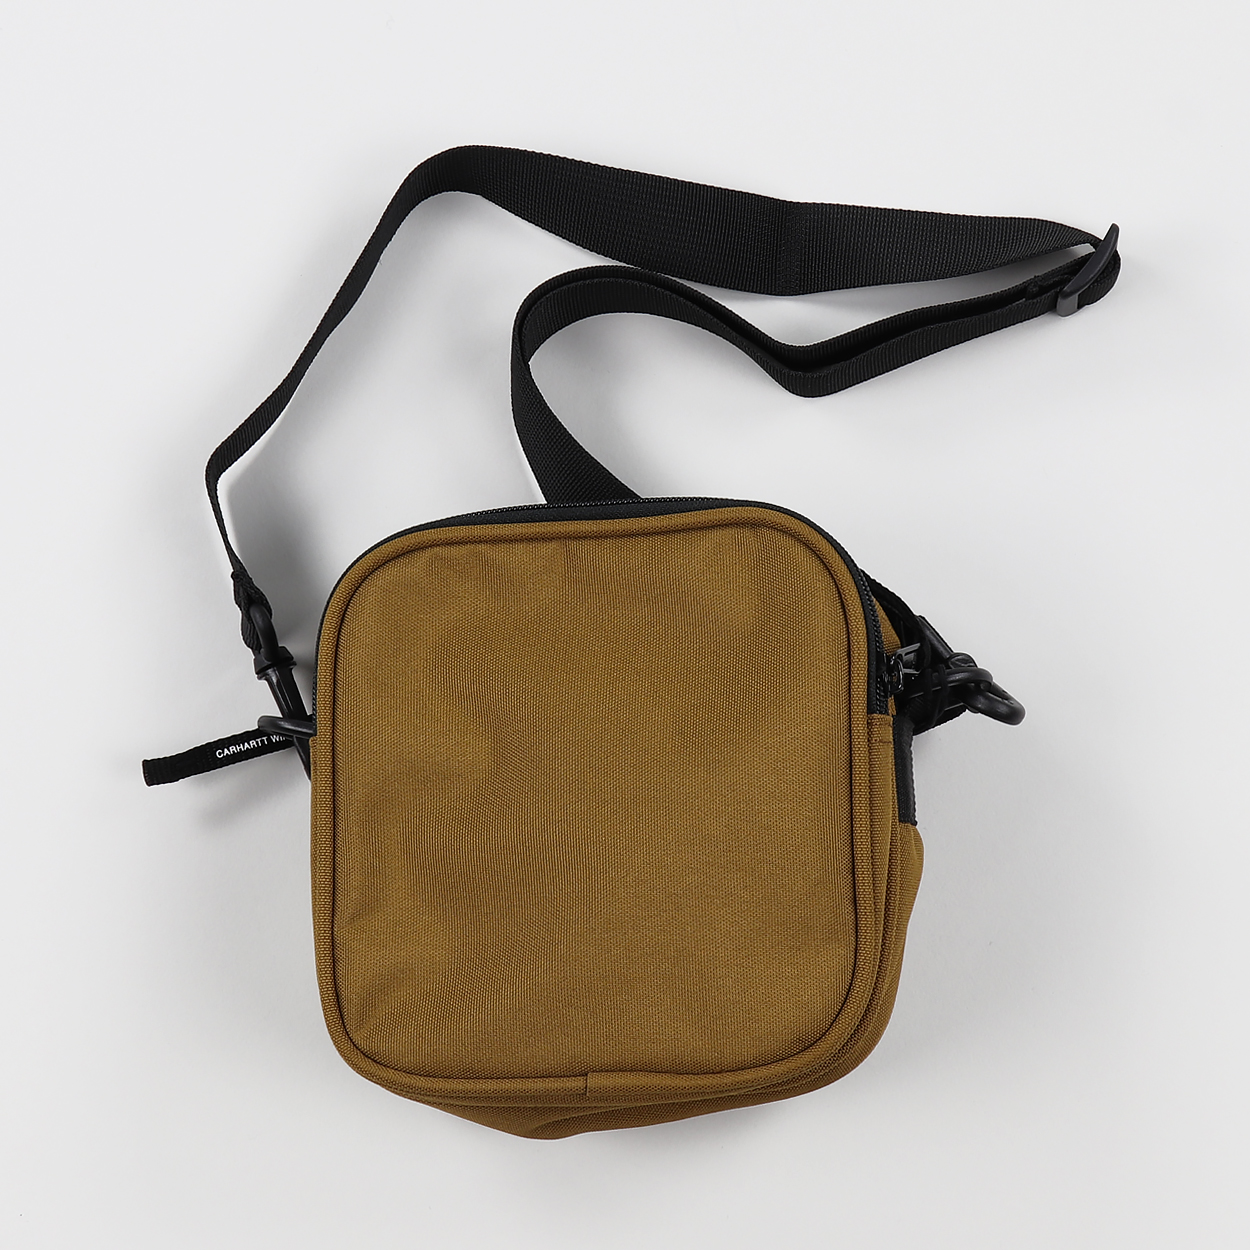 675cedcc7 A durable and small capacity bag from the guys at Carhartt Work In Progress  that can be worn in a variety of ways for all your essential bits and  pieces.